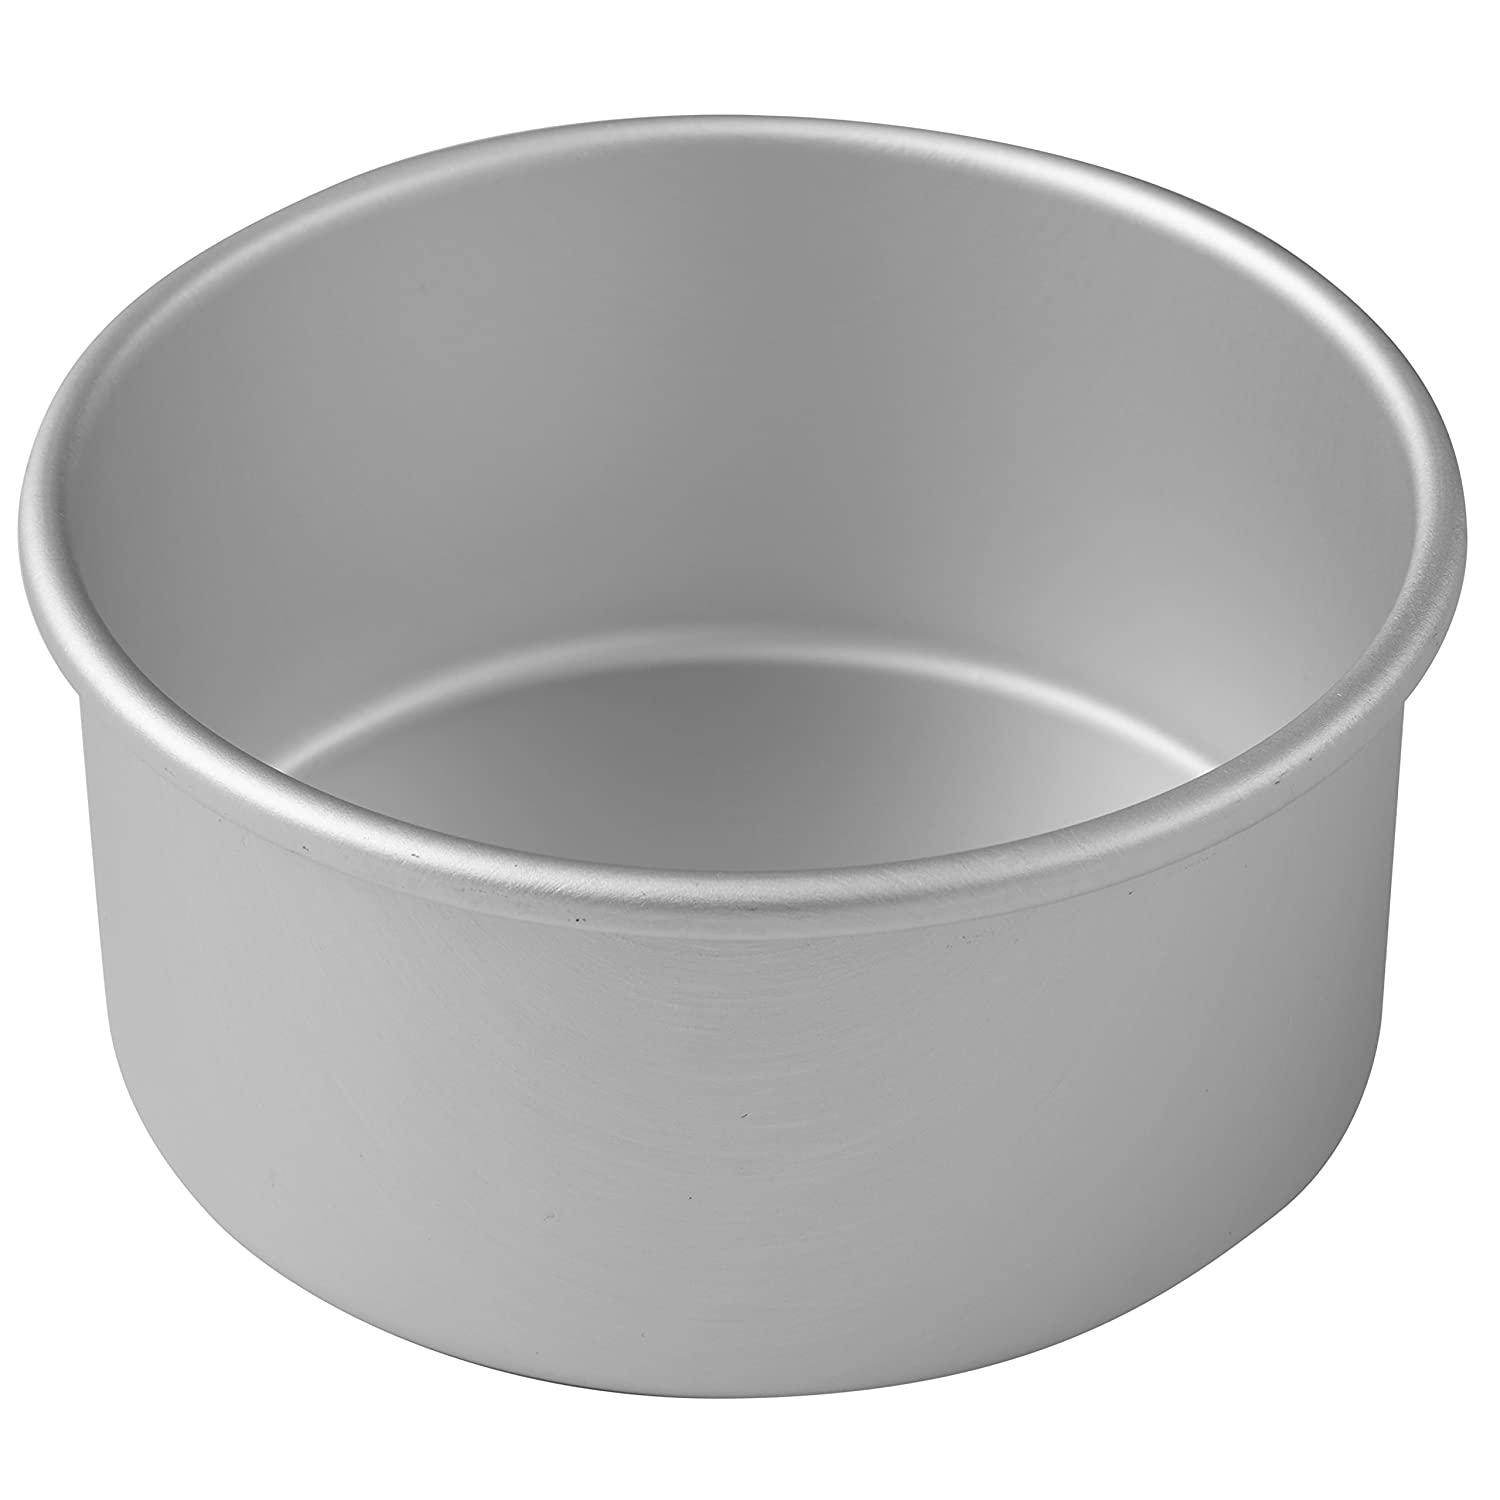 Wilton Round Cake Pan, Even-Heating for Perfect Results Every Time, Durable Heavy-Duty Aluminum, 6 x 3-Inches